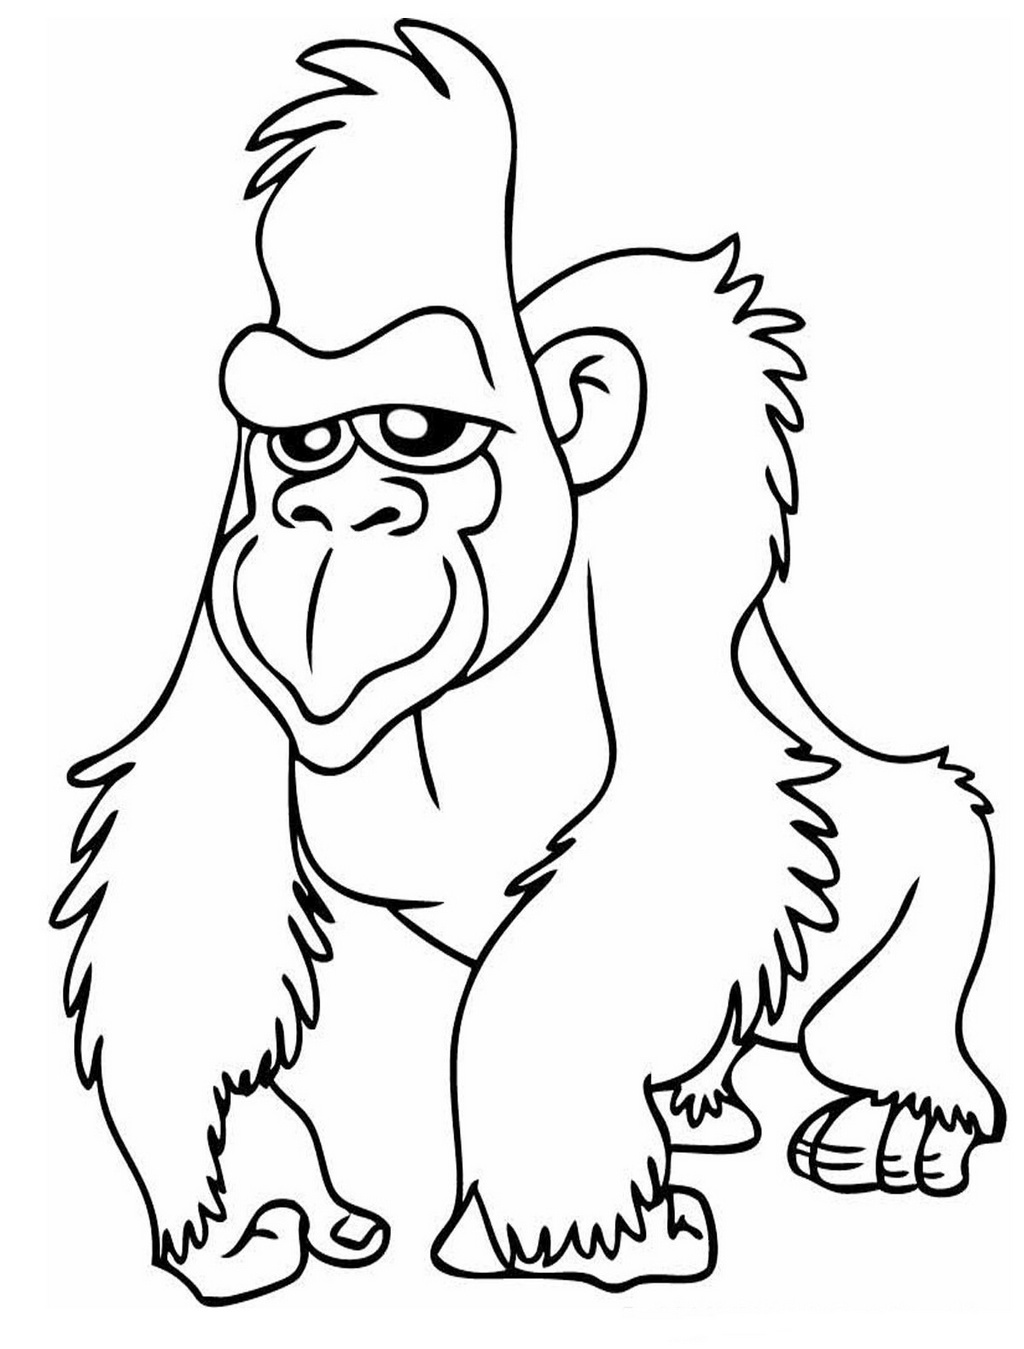 gorilla coloring and activity page for kids